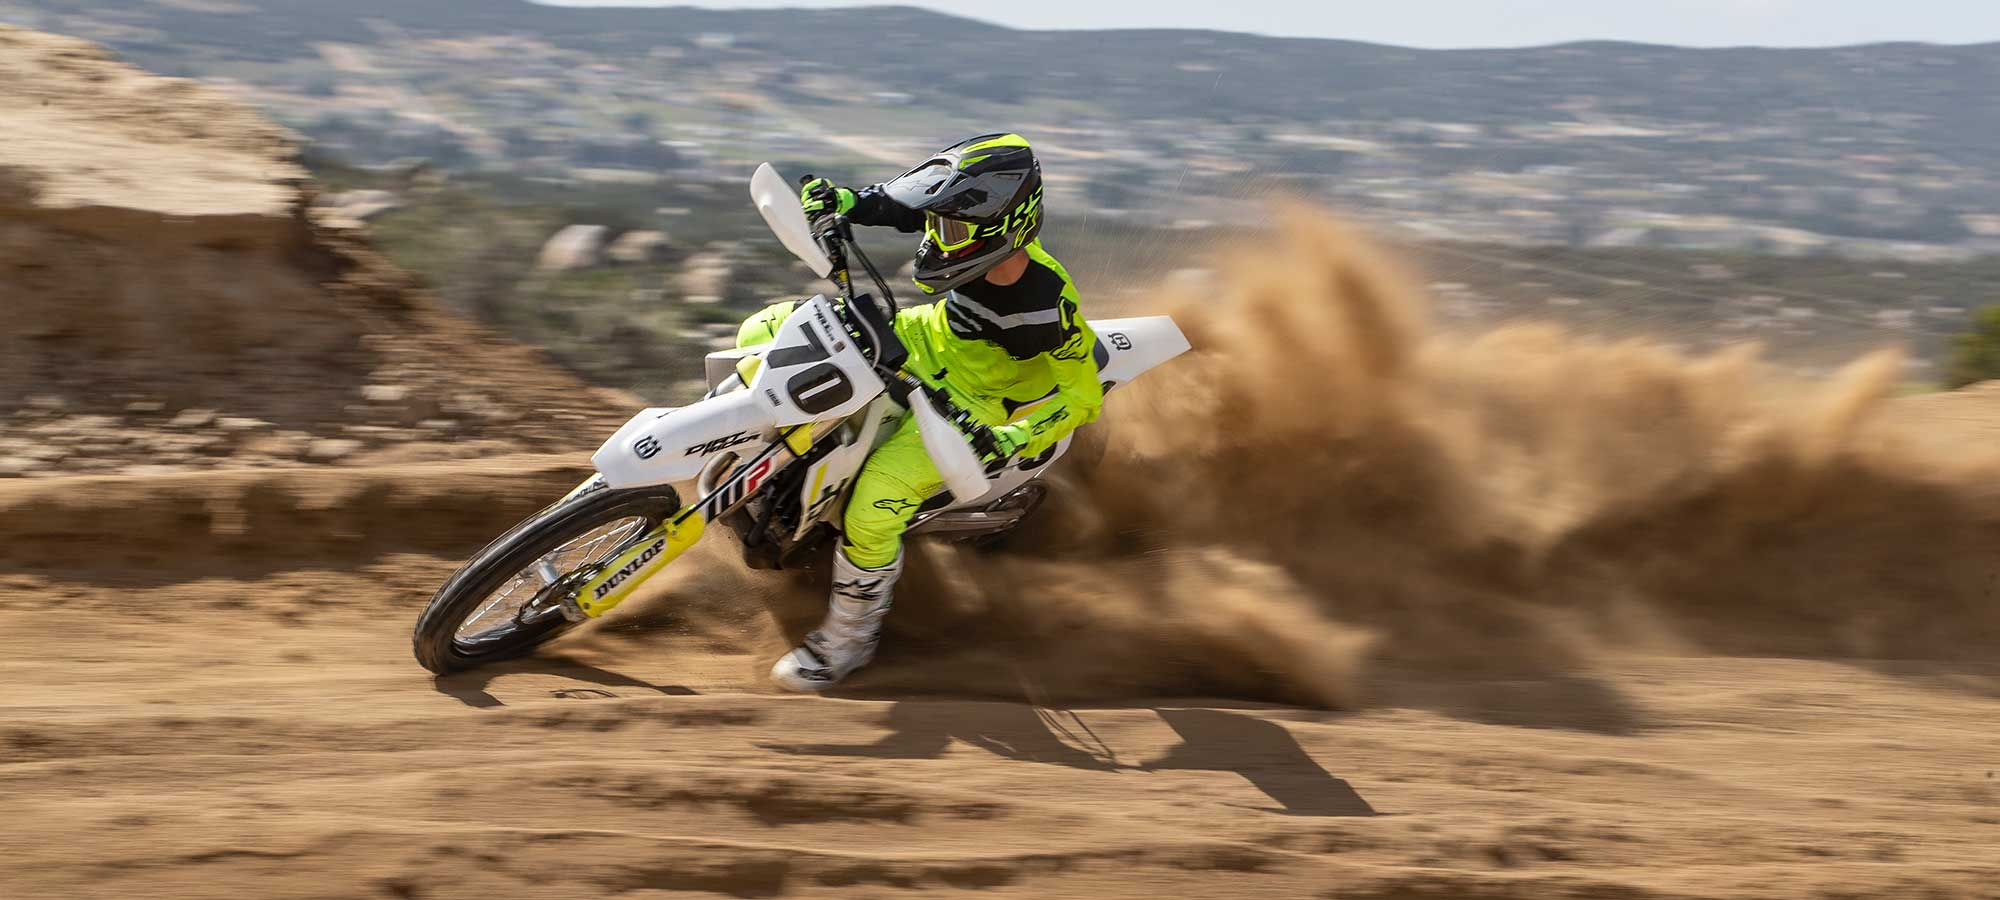 Husqvarna FX 450 riding on sand.